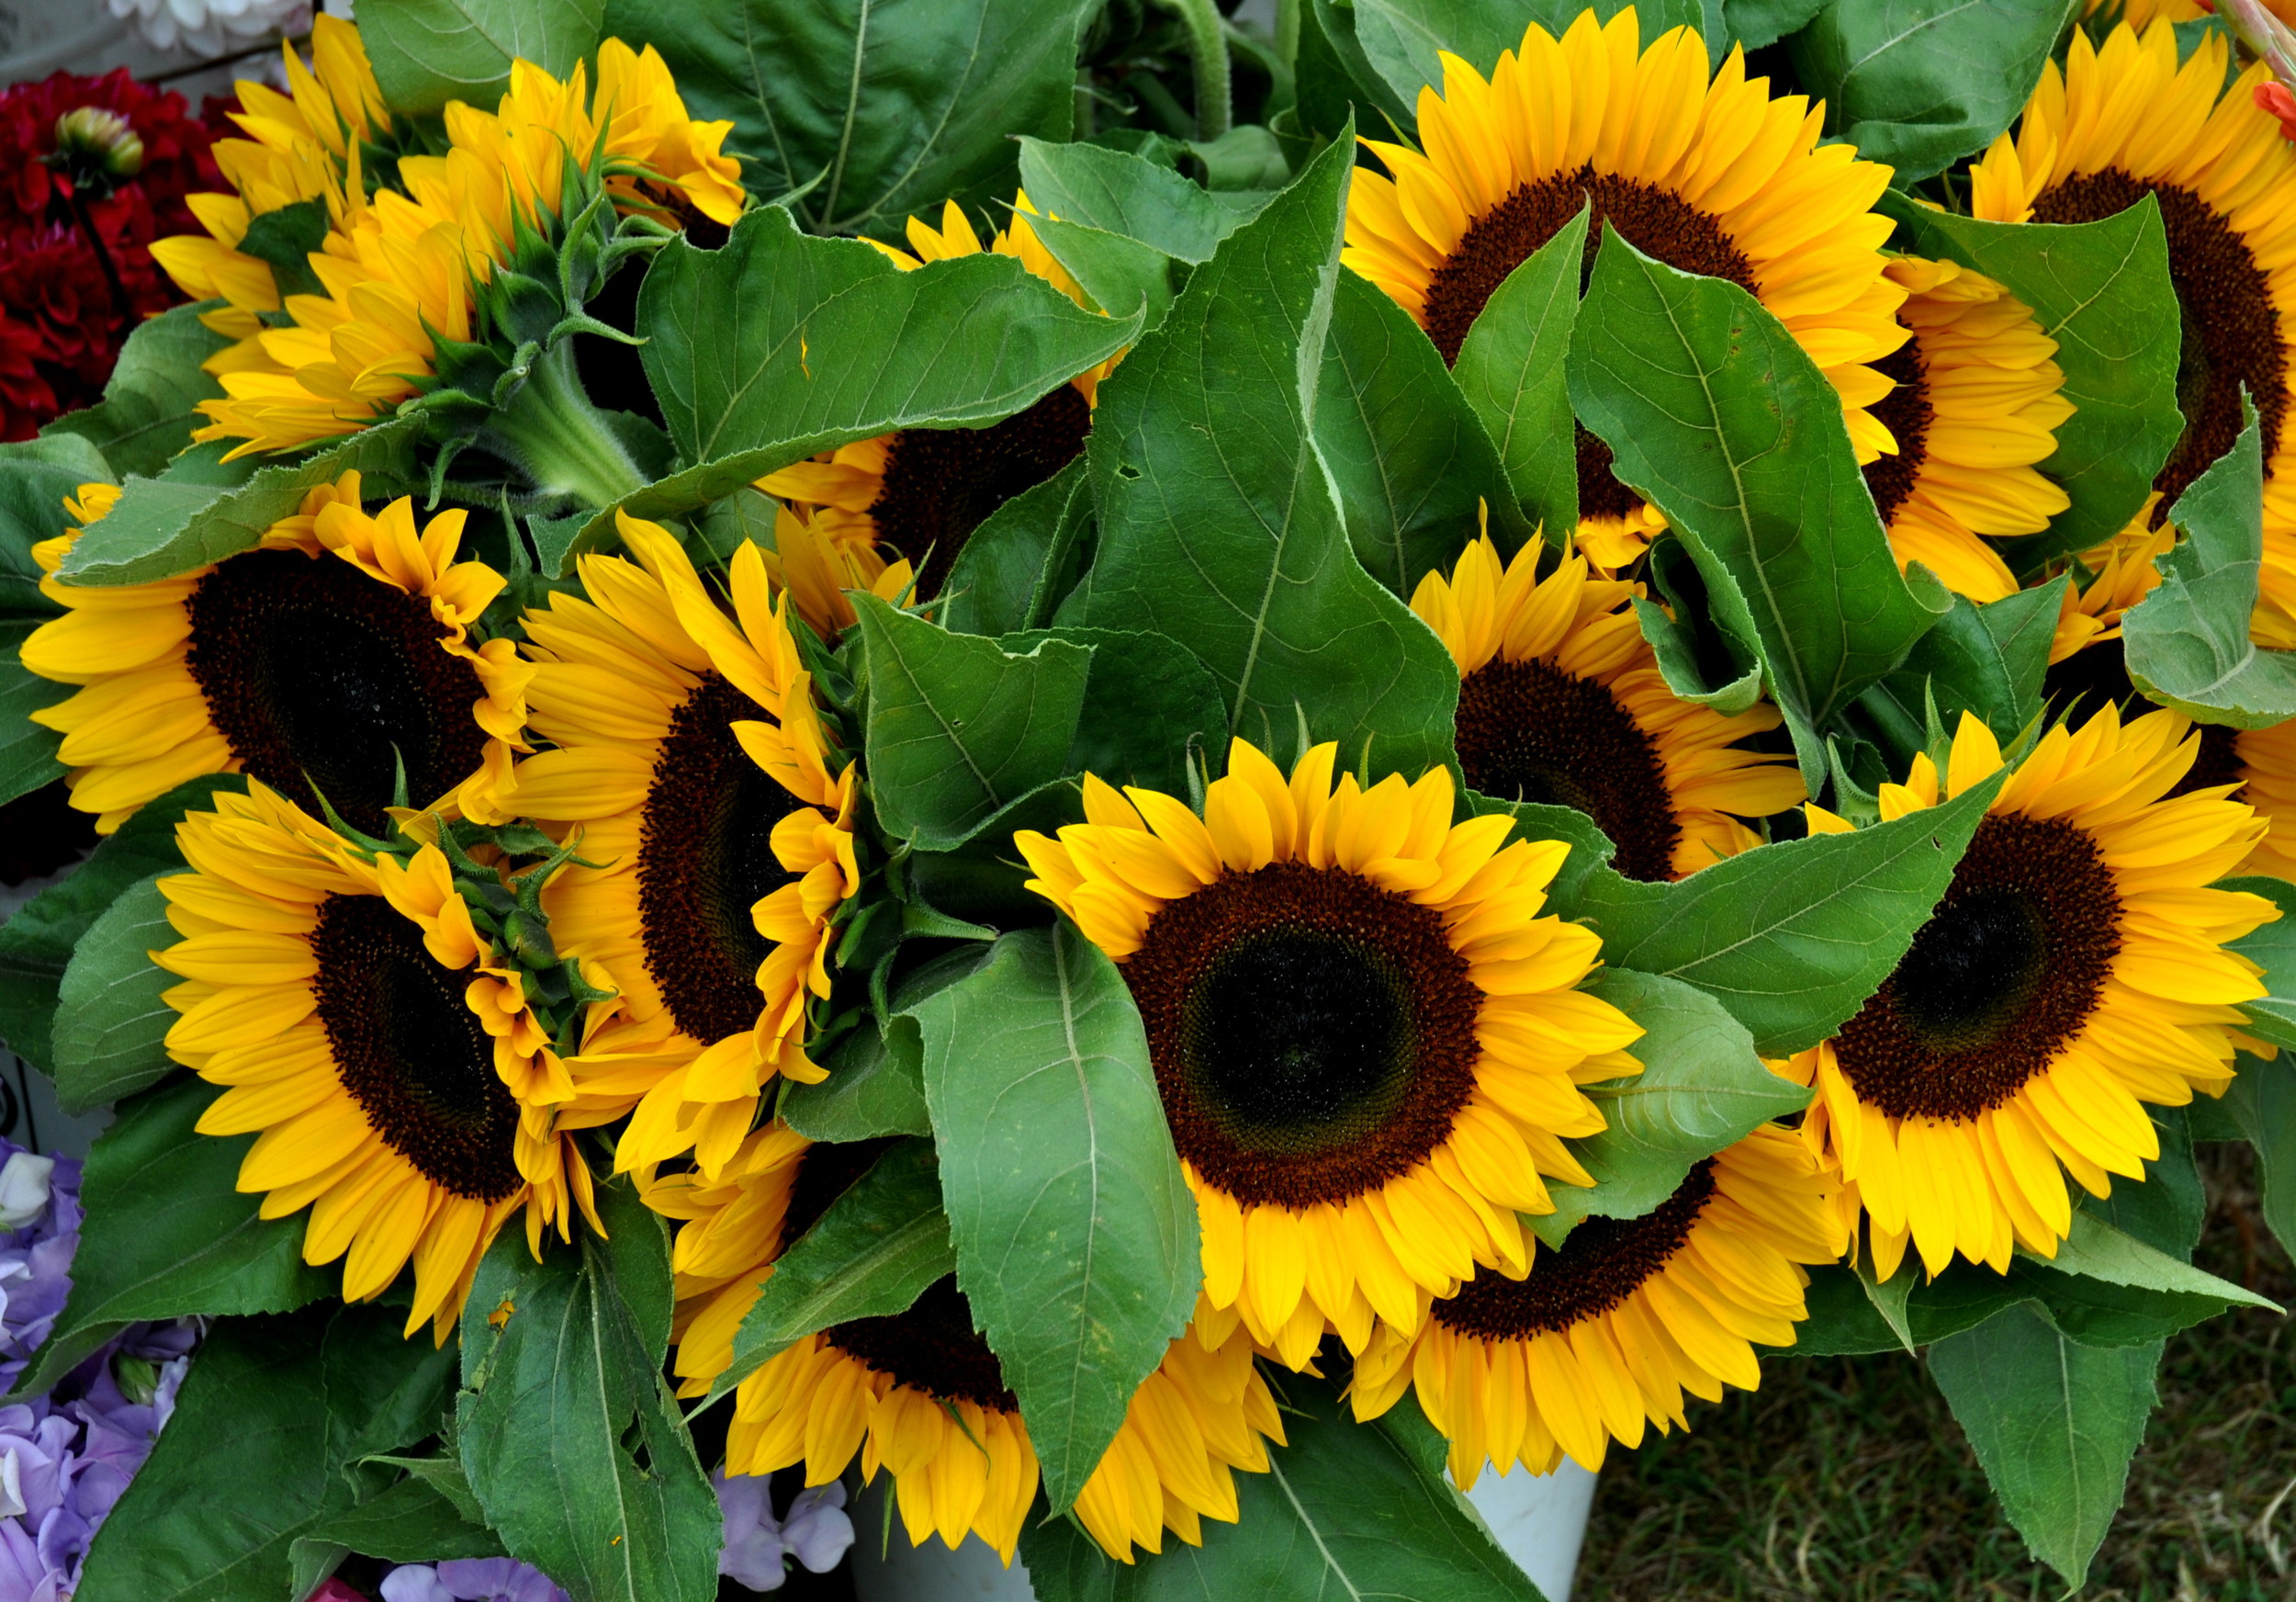 Sunflowers from Pa Garden. Photo copyright 2013 by Zachary D. Lyons.